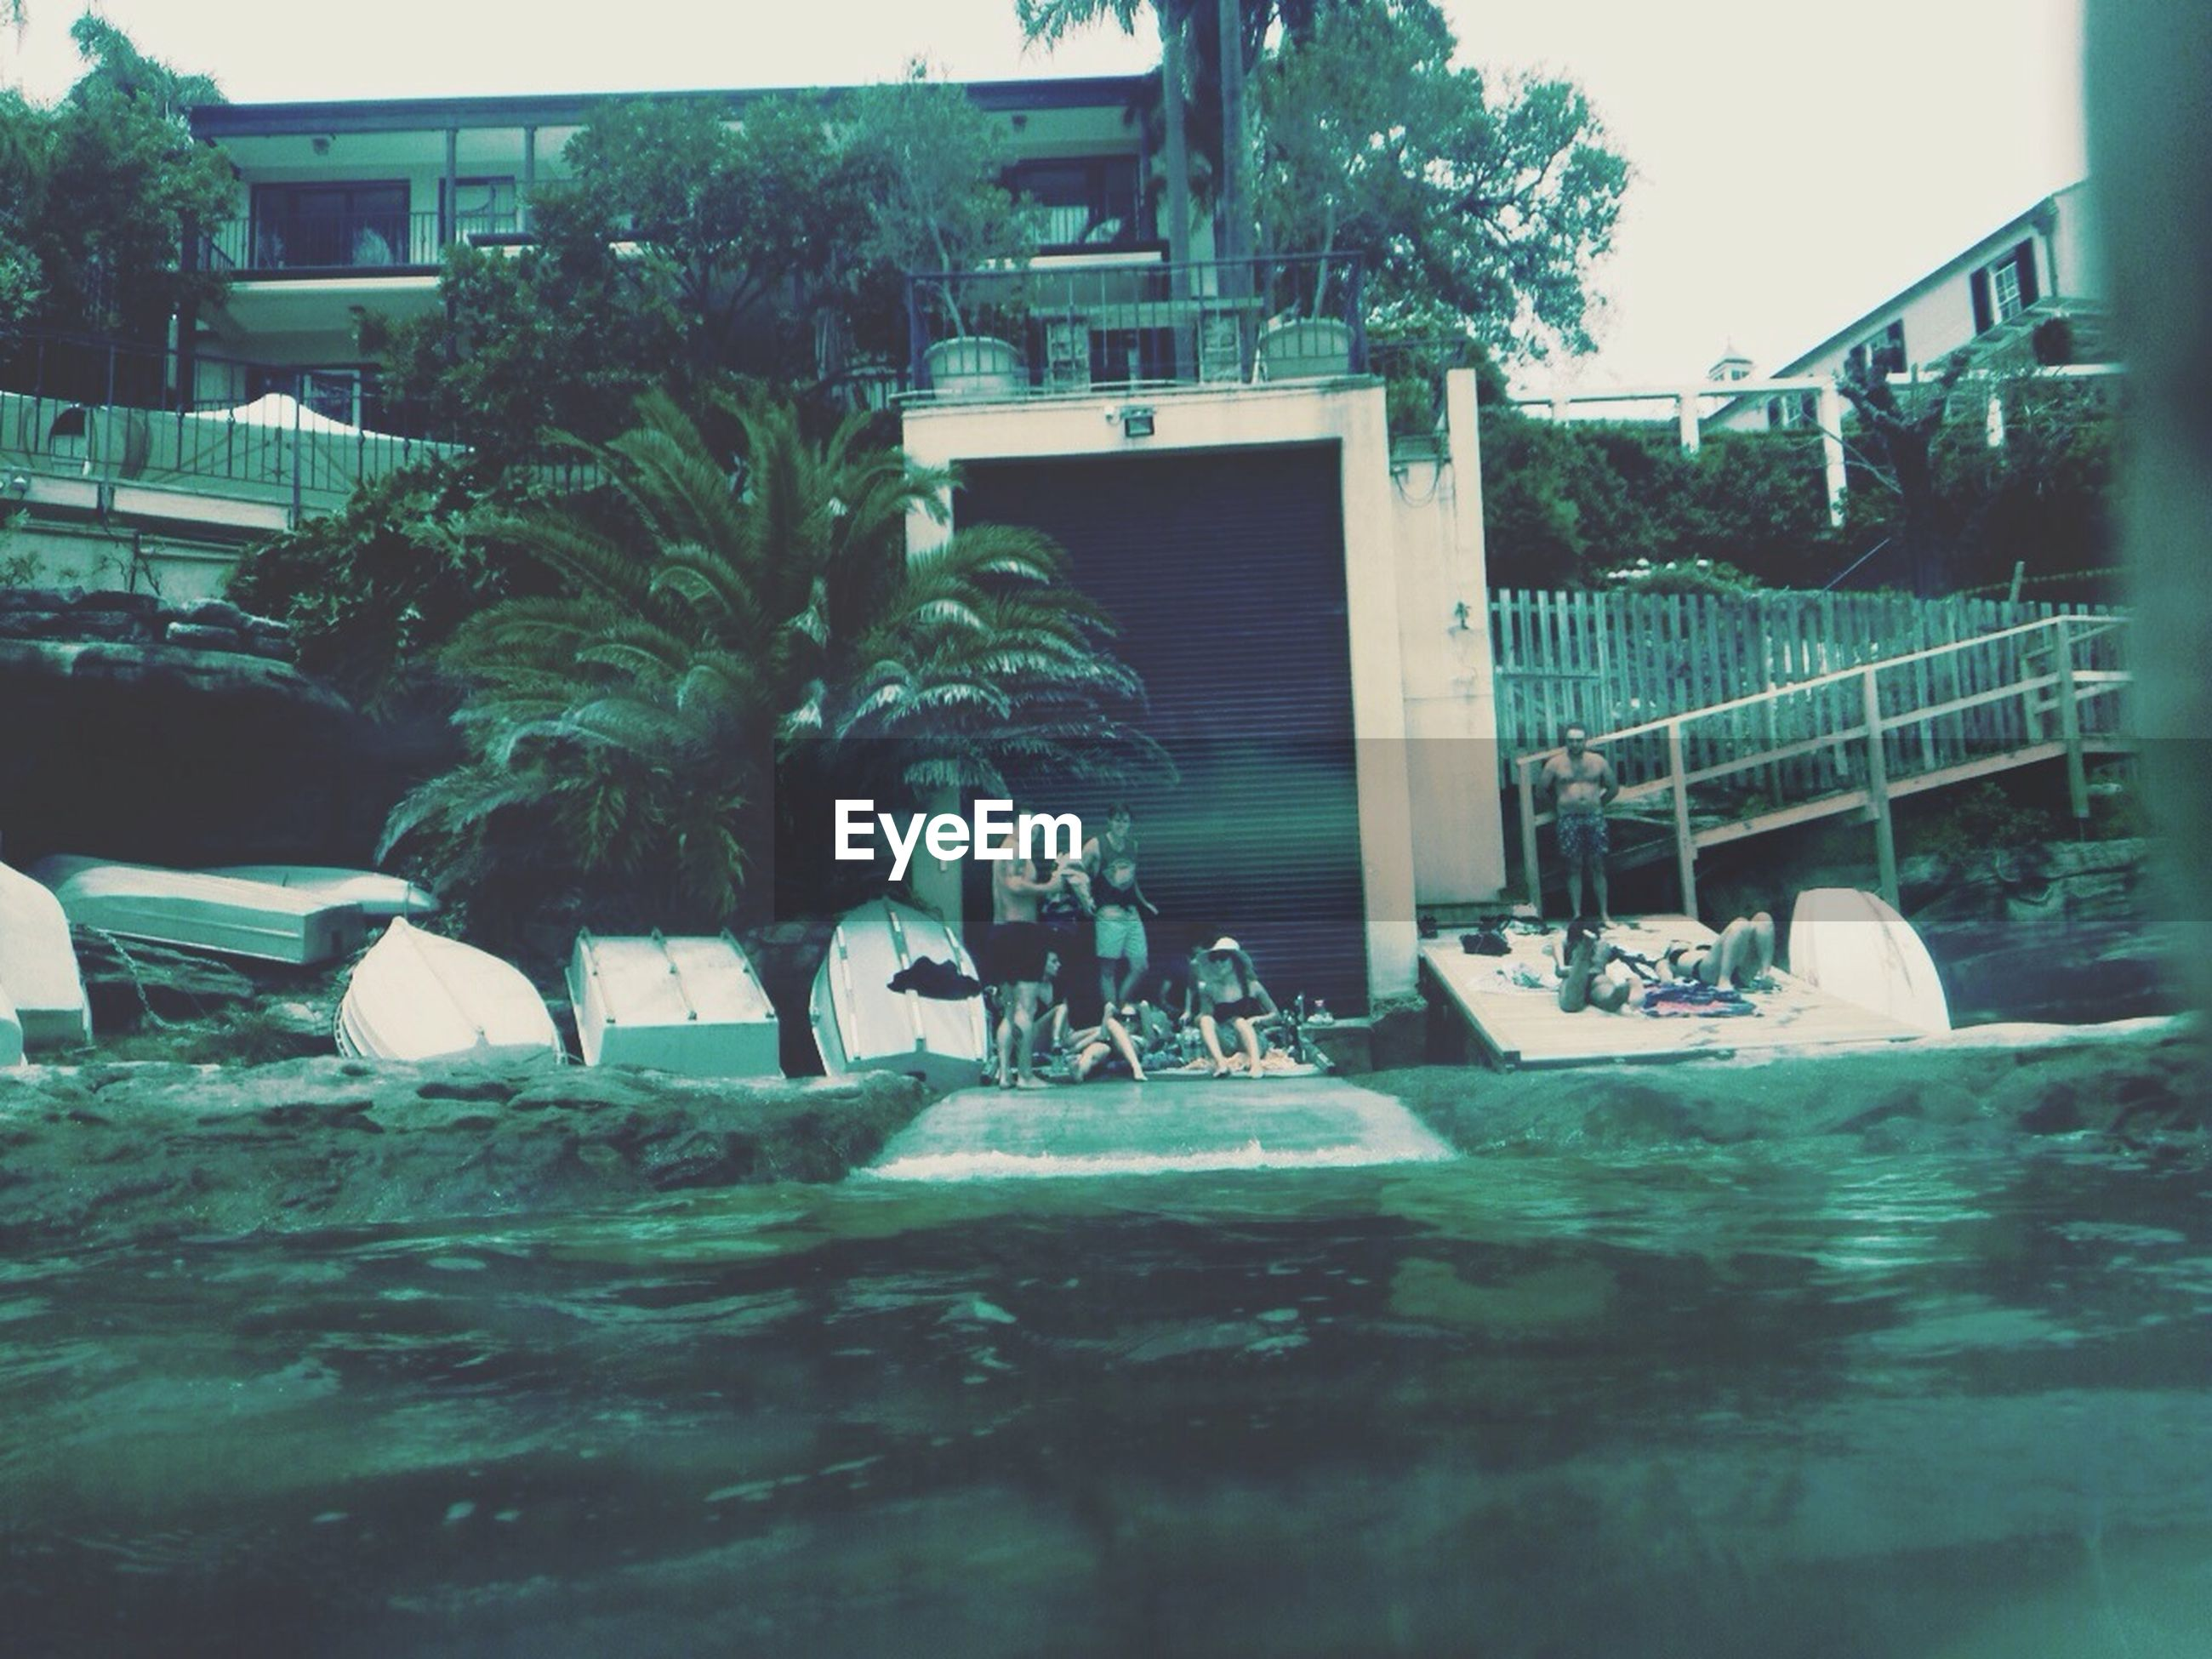 water, built structure, tree, architecture, building exterior, animal themes, waterfront, swimming pool, reflection, day, outdoors, nature, house, relaxation, pond, swimming, men, sunlight, plant